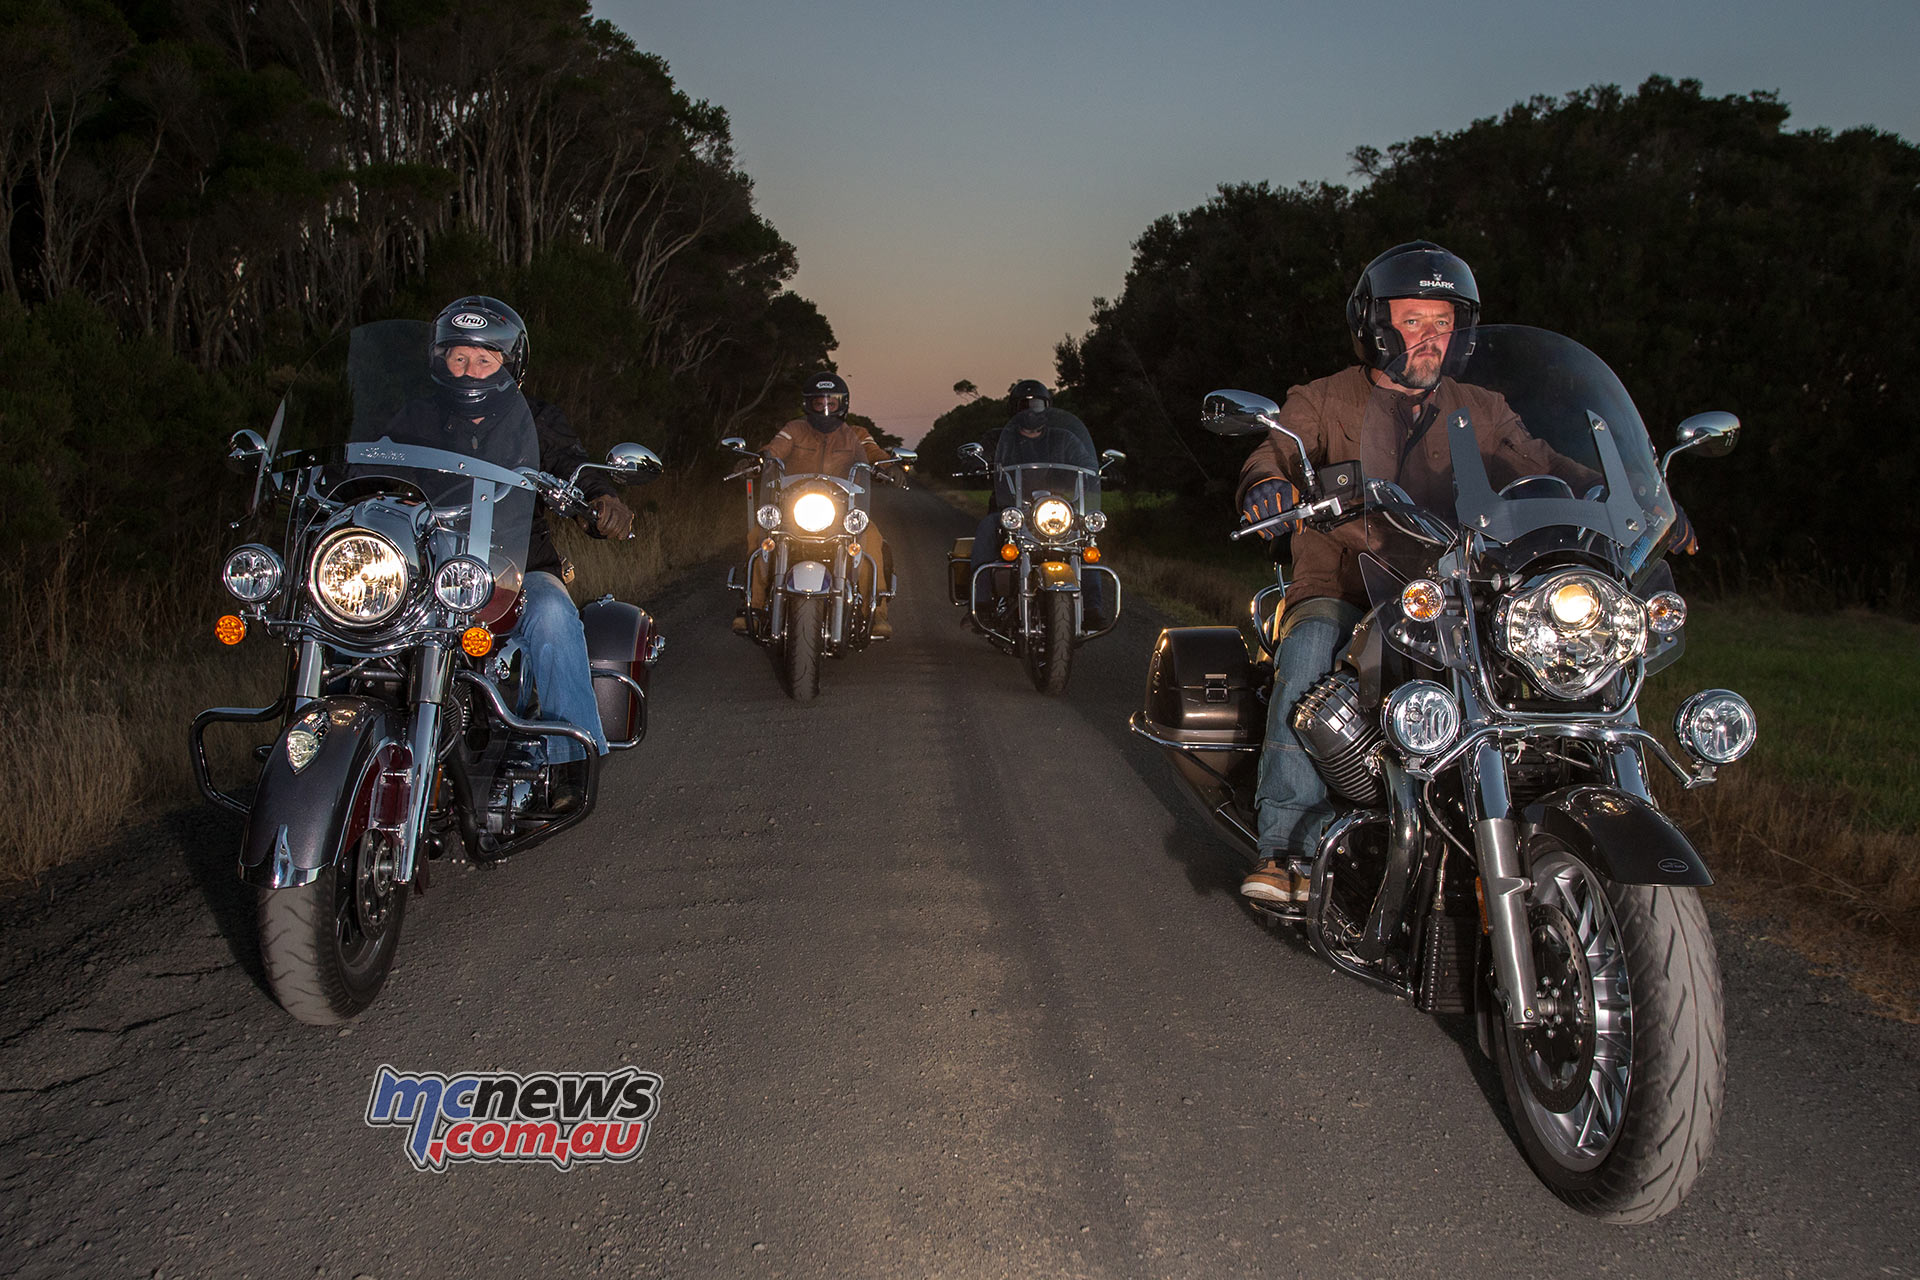 Darren leads the way on the Moto Guzzi California Touring in this shot alongside Christone on the Indian Springfield while Trev is further behind on the Triumph Thunderbird LT and Gav brings up the rear on the Harley-Davidson Road King - Image by Andrew Gosling